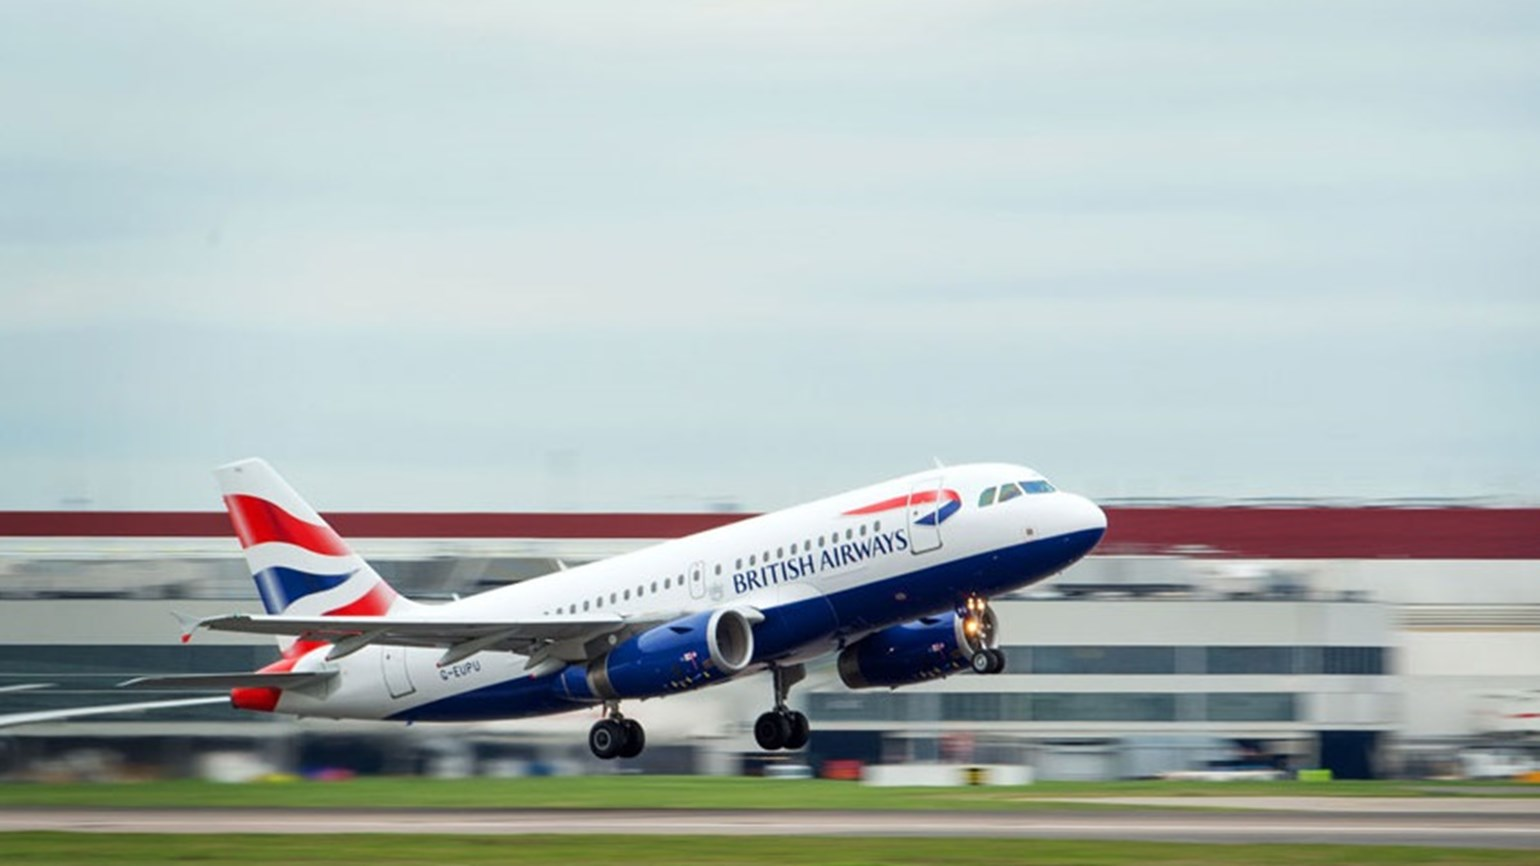 IAG owns British Airways